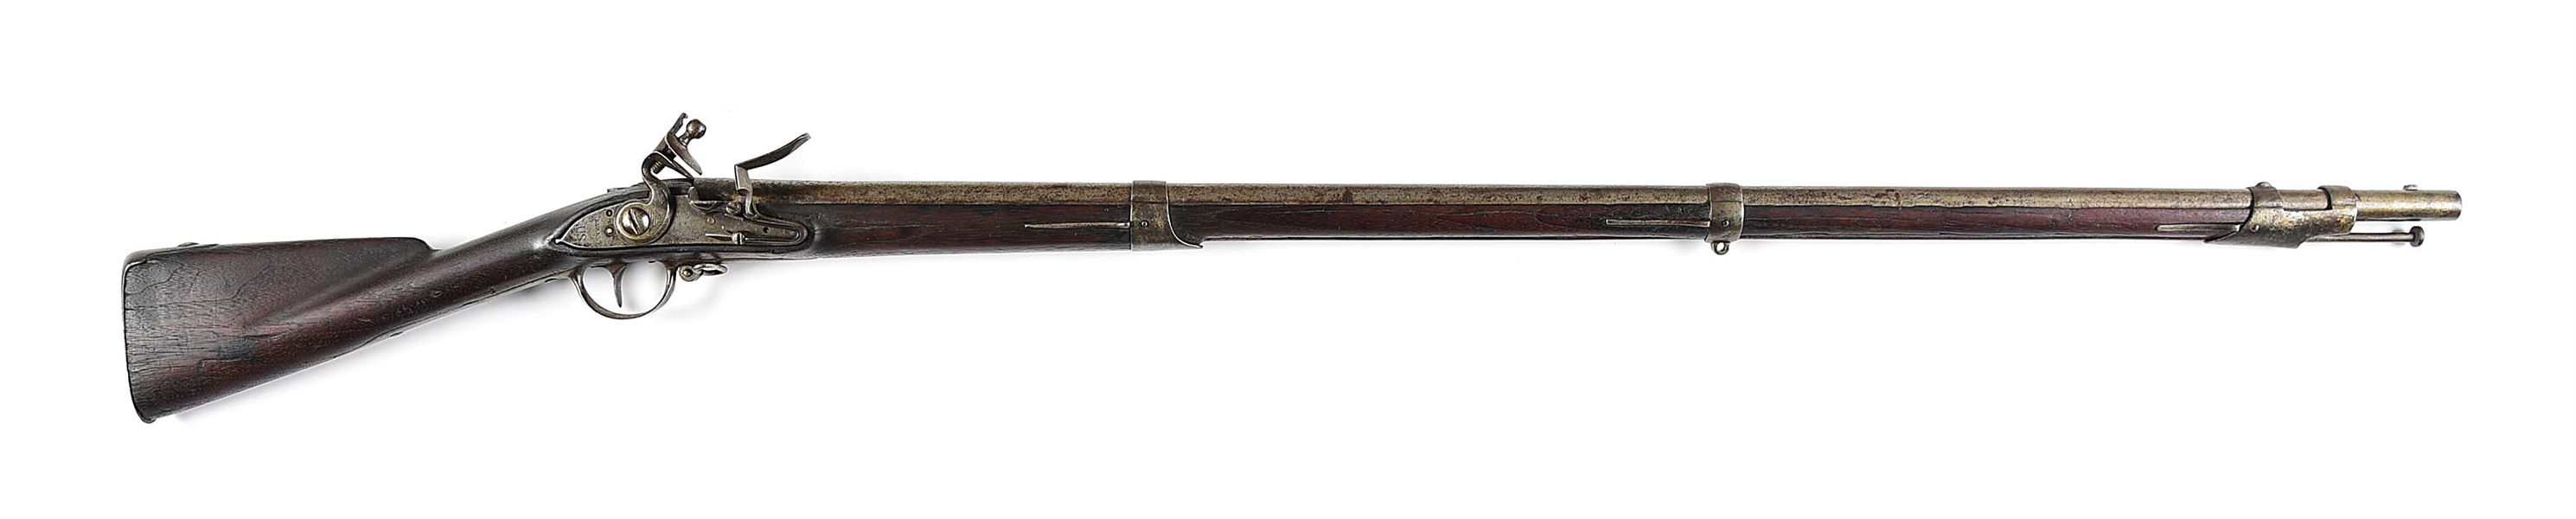 (A) EVANS MODEL 1797 .69 CALIBER PERCUSSION CONTRACT RIFLE.